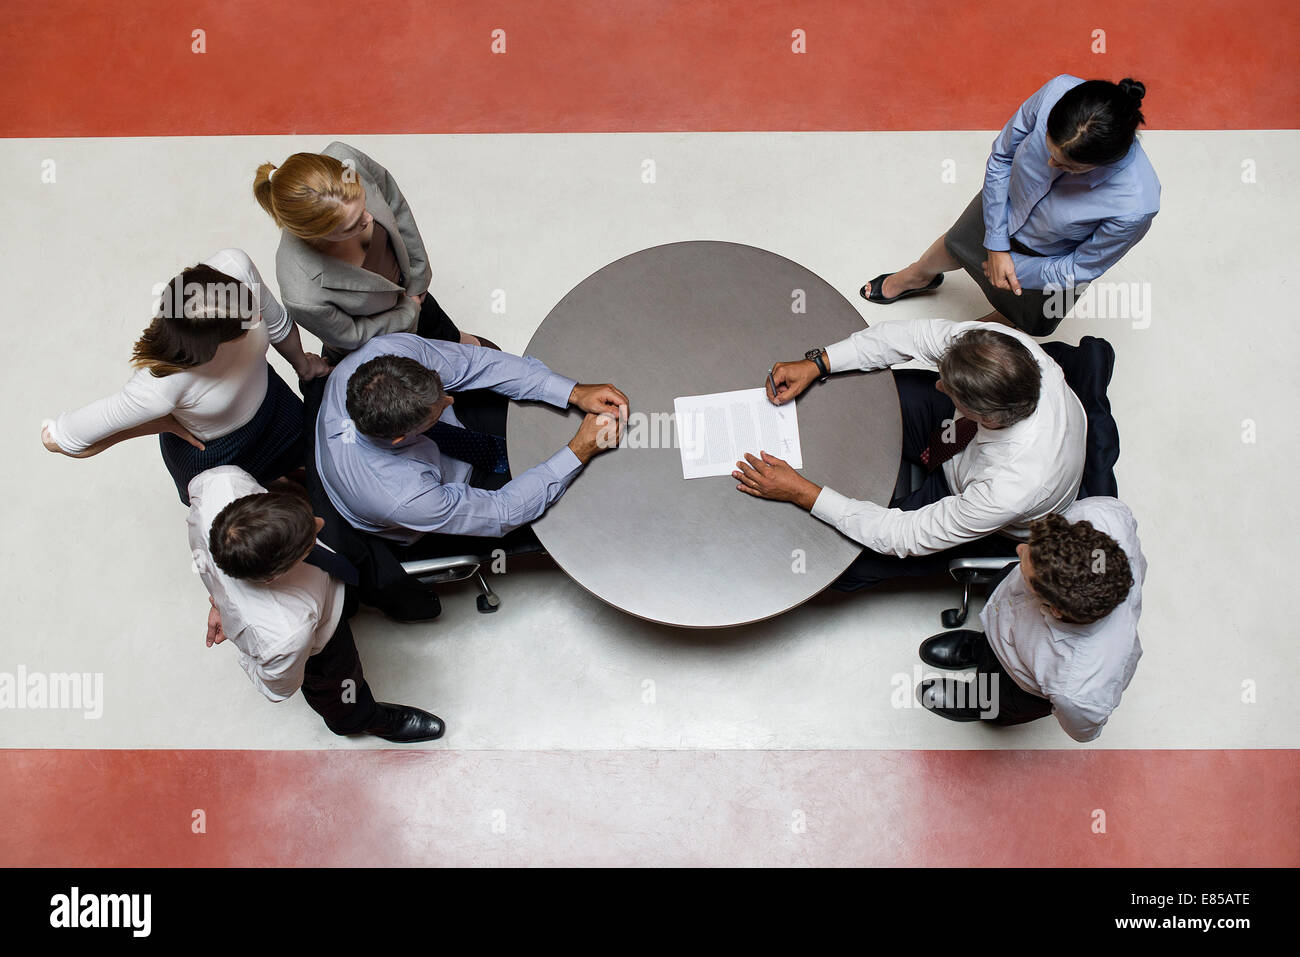 Businessmen flanked by support staff negotiate contract - Stock Image